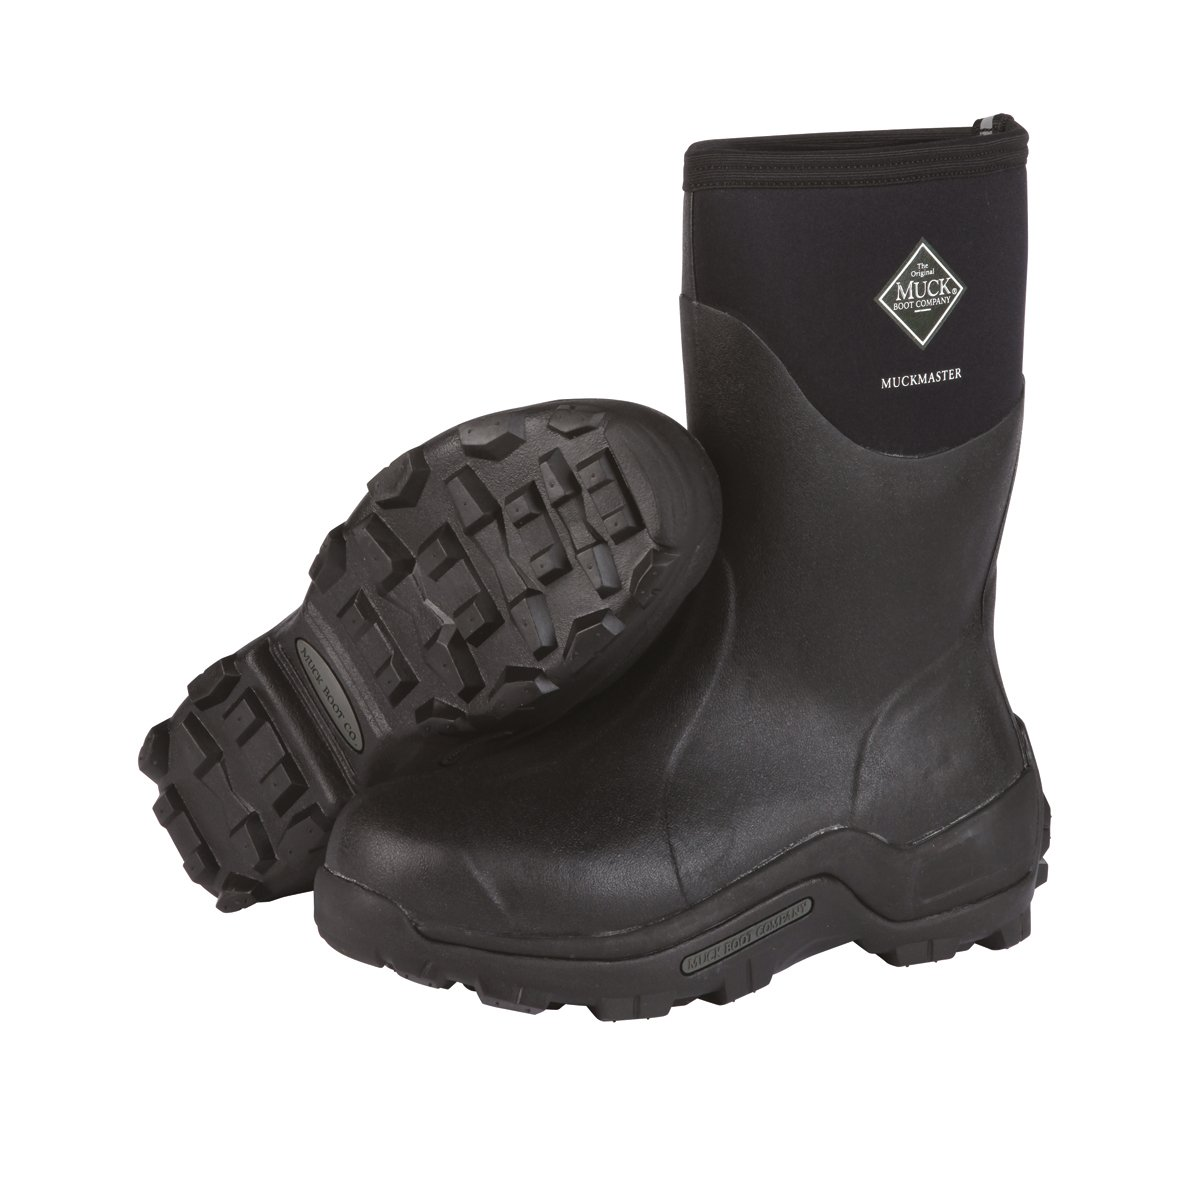 The Original MuckBoots MuckMaster Mid Boot,Black,11 M US Mens/12 M US Womens